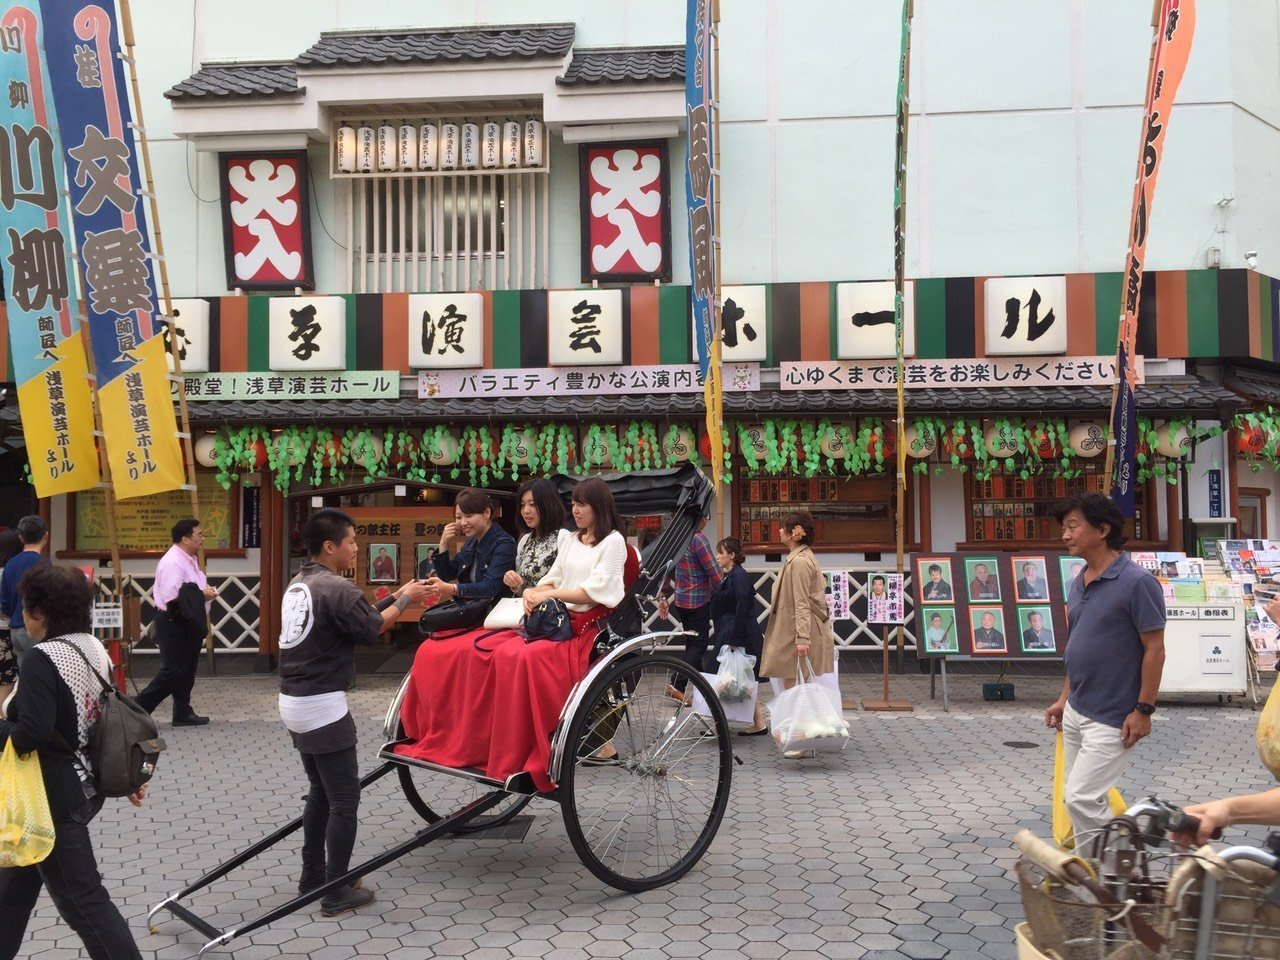 Asakusa Engei Hall - Takeshi Kitano and Kinichi Hagimoto used to perform here